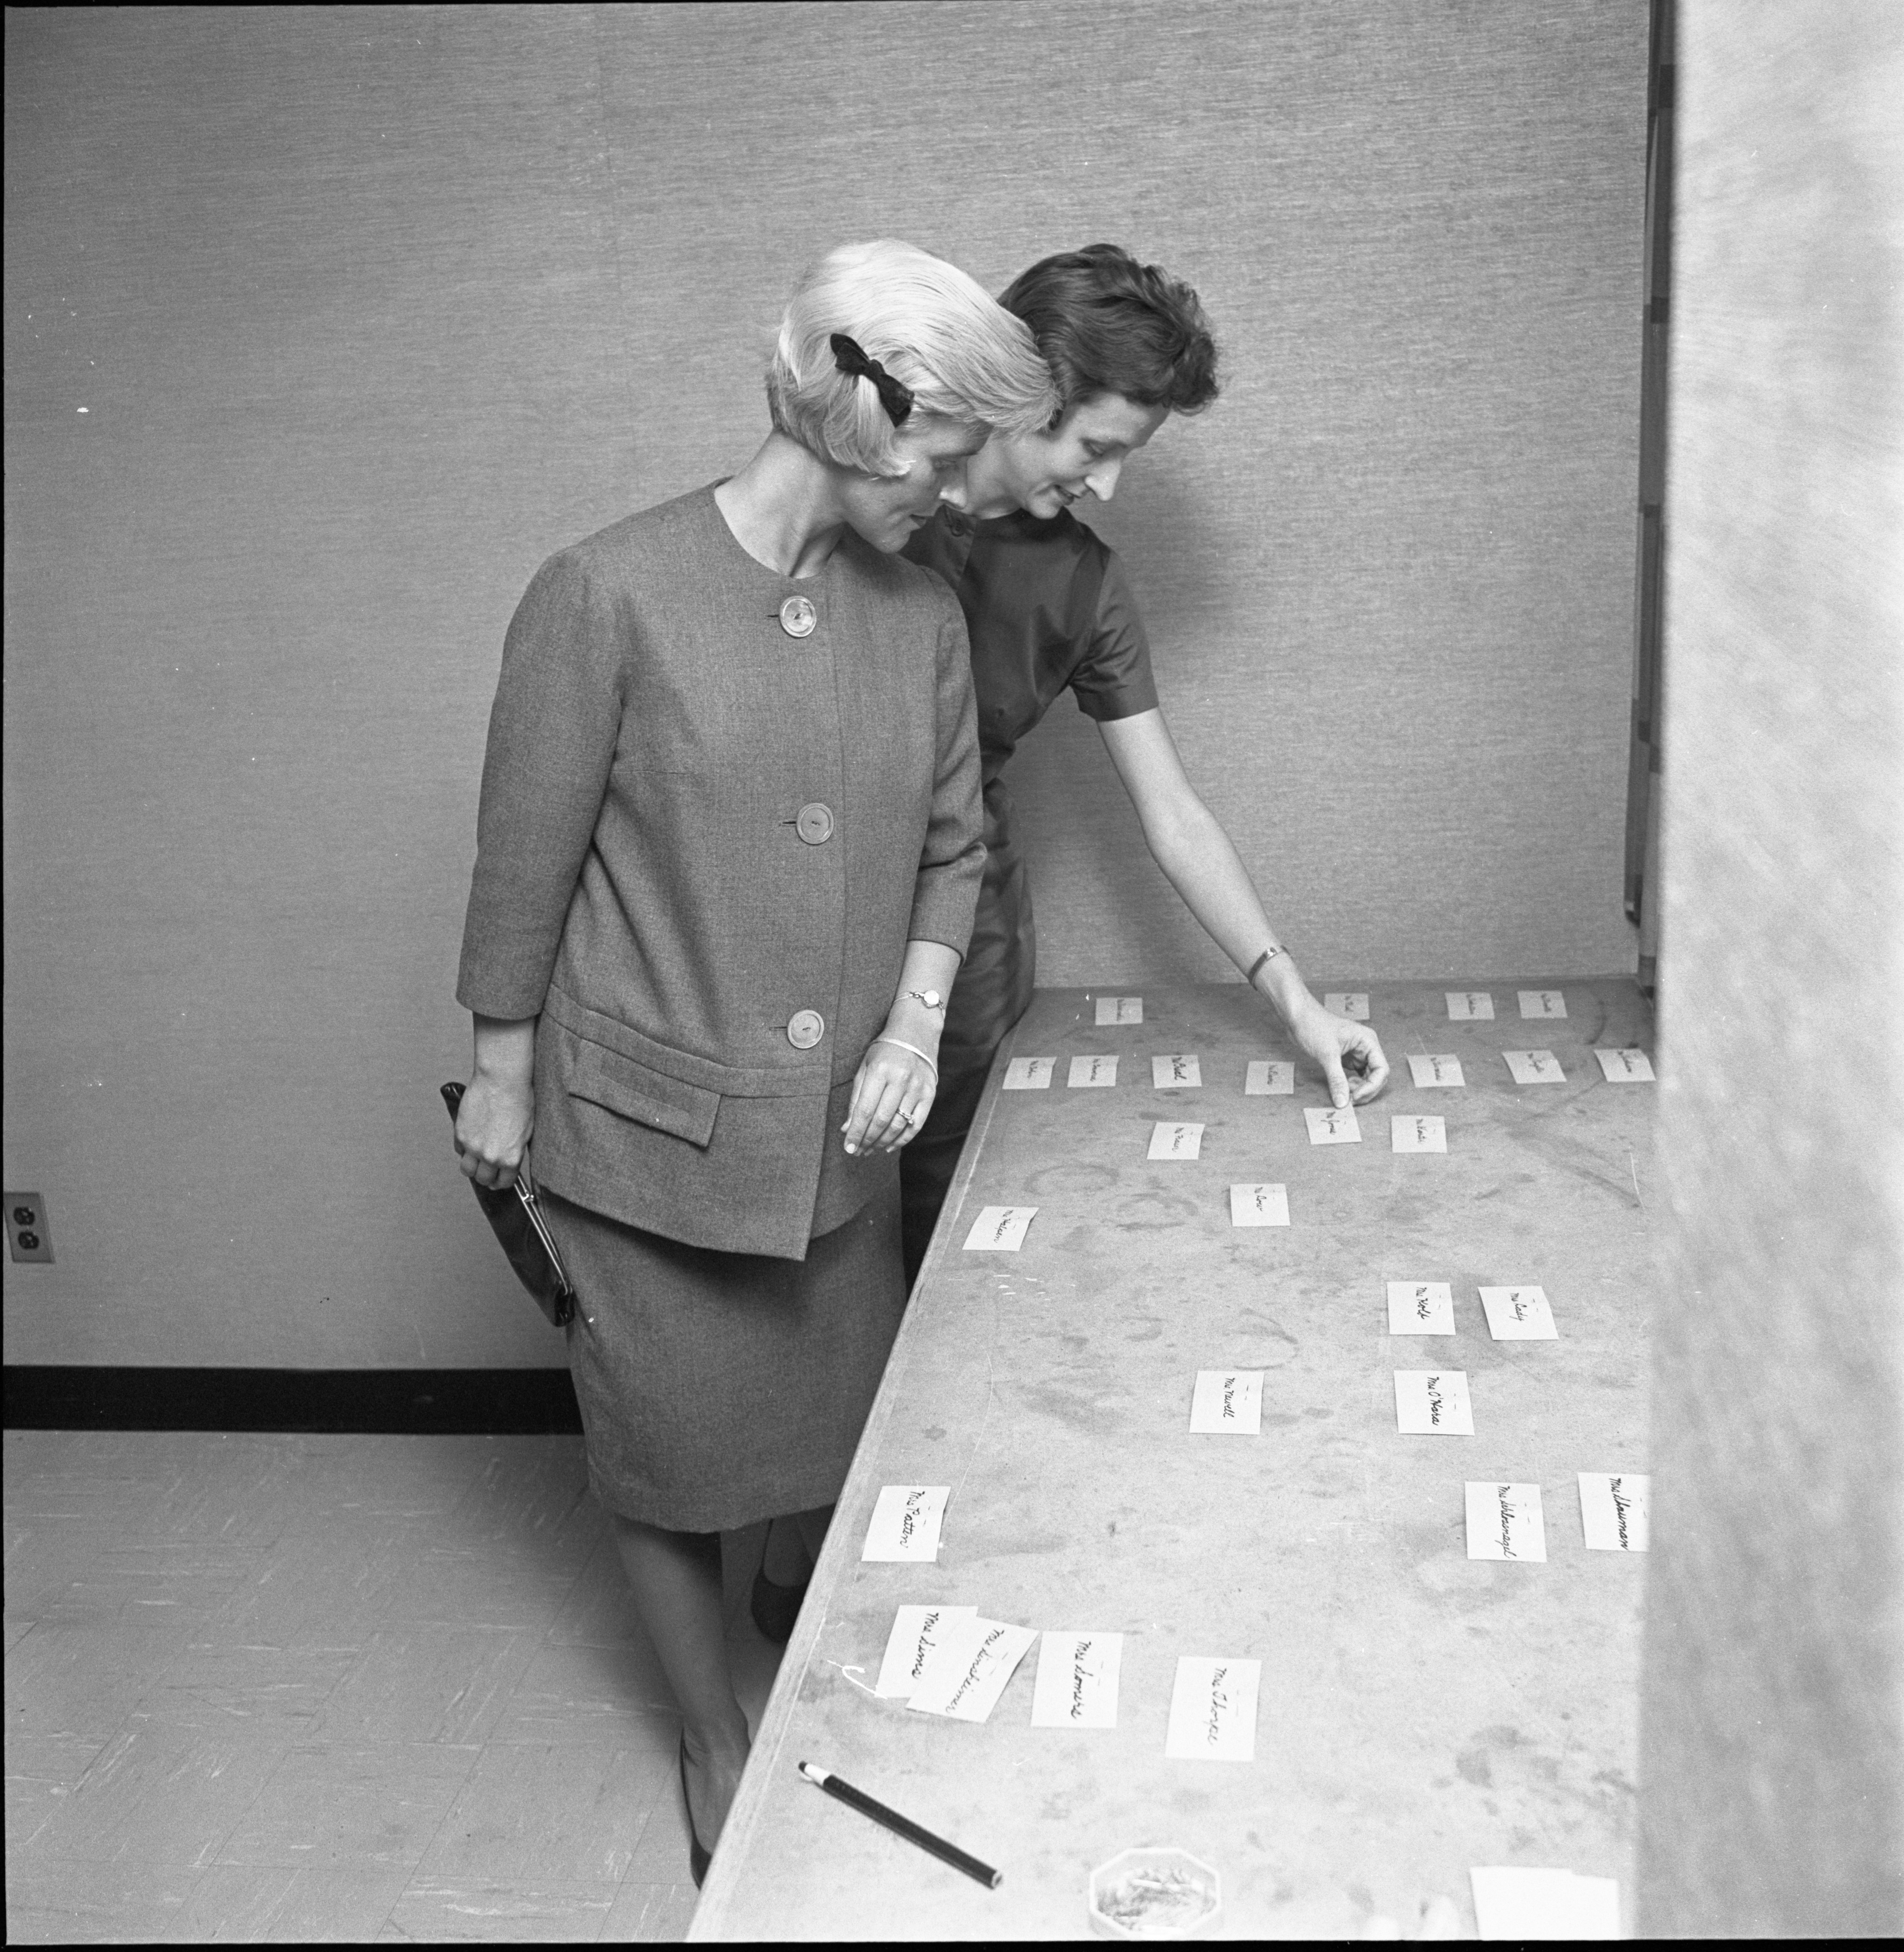 Guests Find Their Name Tags At The League Of Women Voters Annual Membership Dessert, September 1962 image